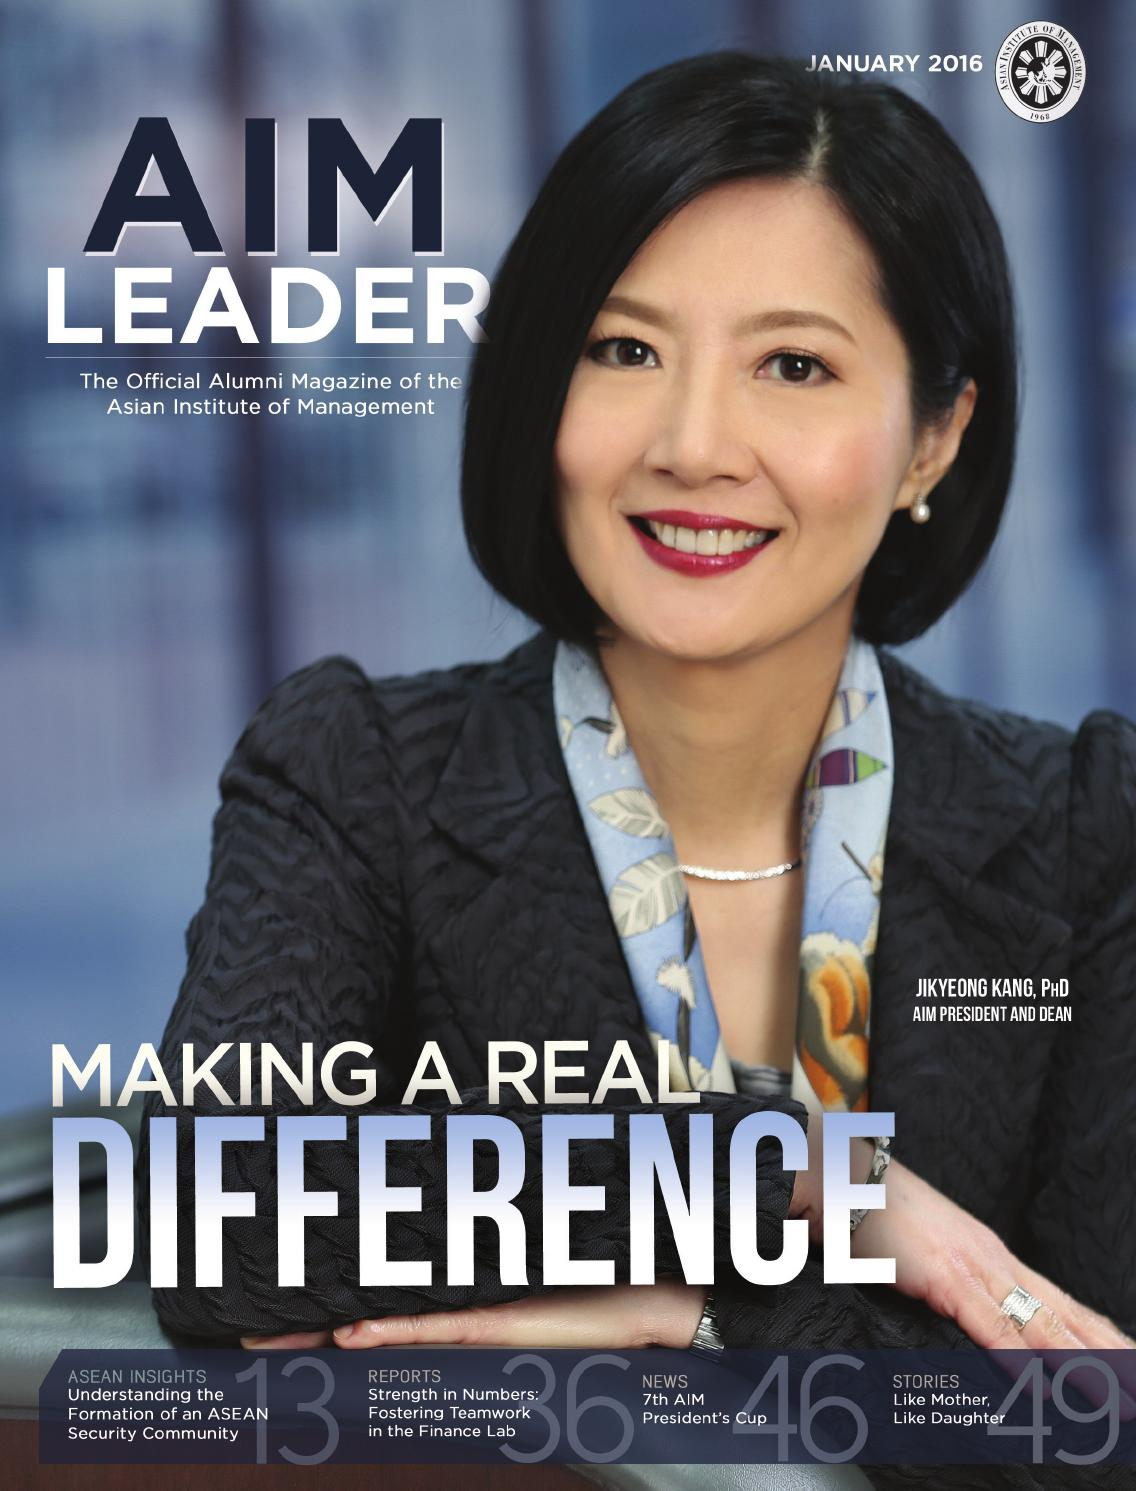 Aim Leader January 2016 Issue By Alumni Publication Issuu Printed Circuit Board Pictures Free Use Image 042054 Freefoto